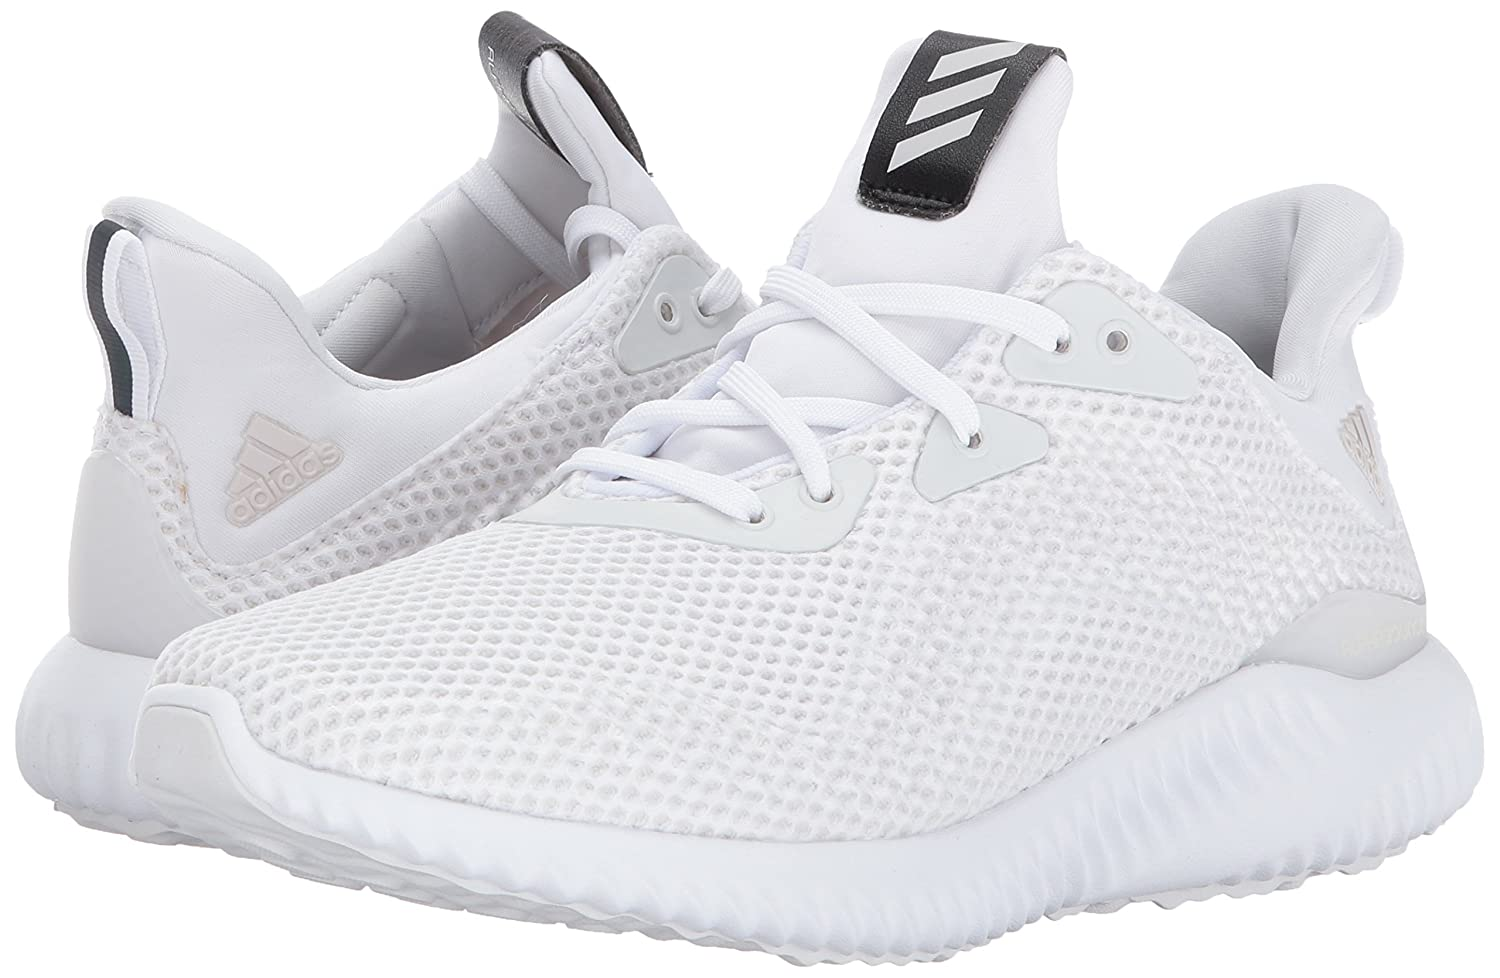 adidas Performance Women's Alphabounce W Running Shoe B01MYR3OE2 7.5 B(M) US|White/Crystal White/Grey One